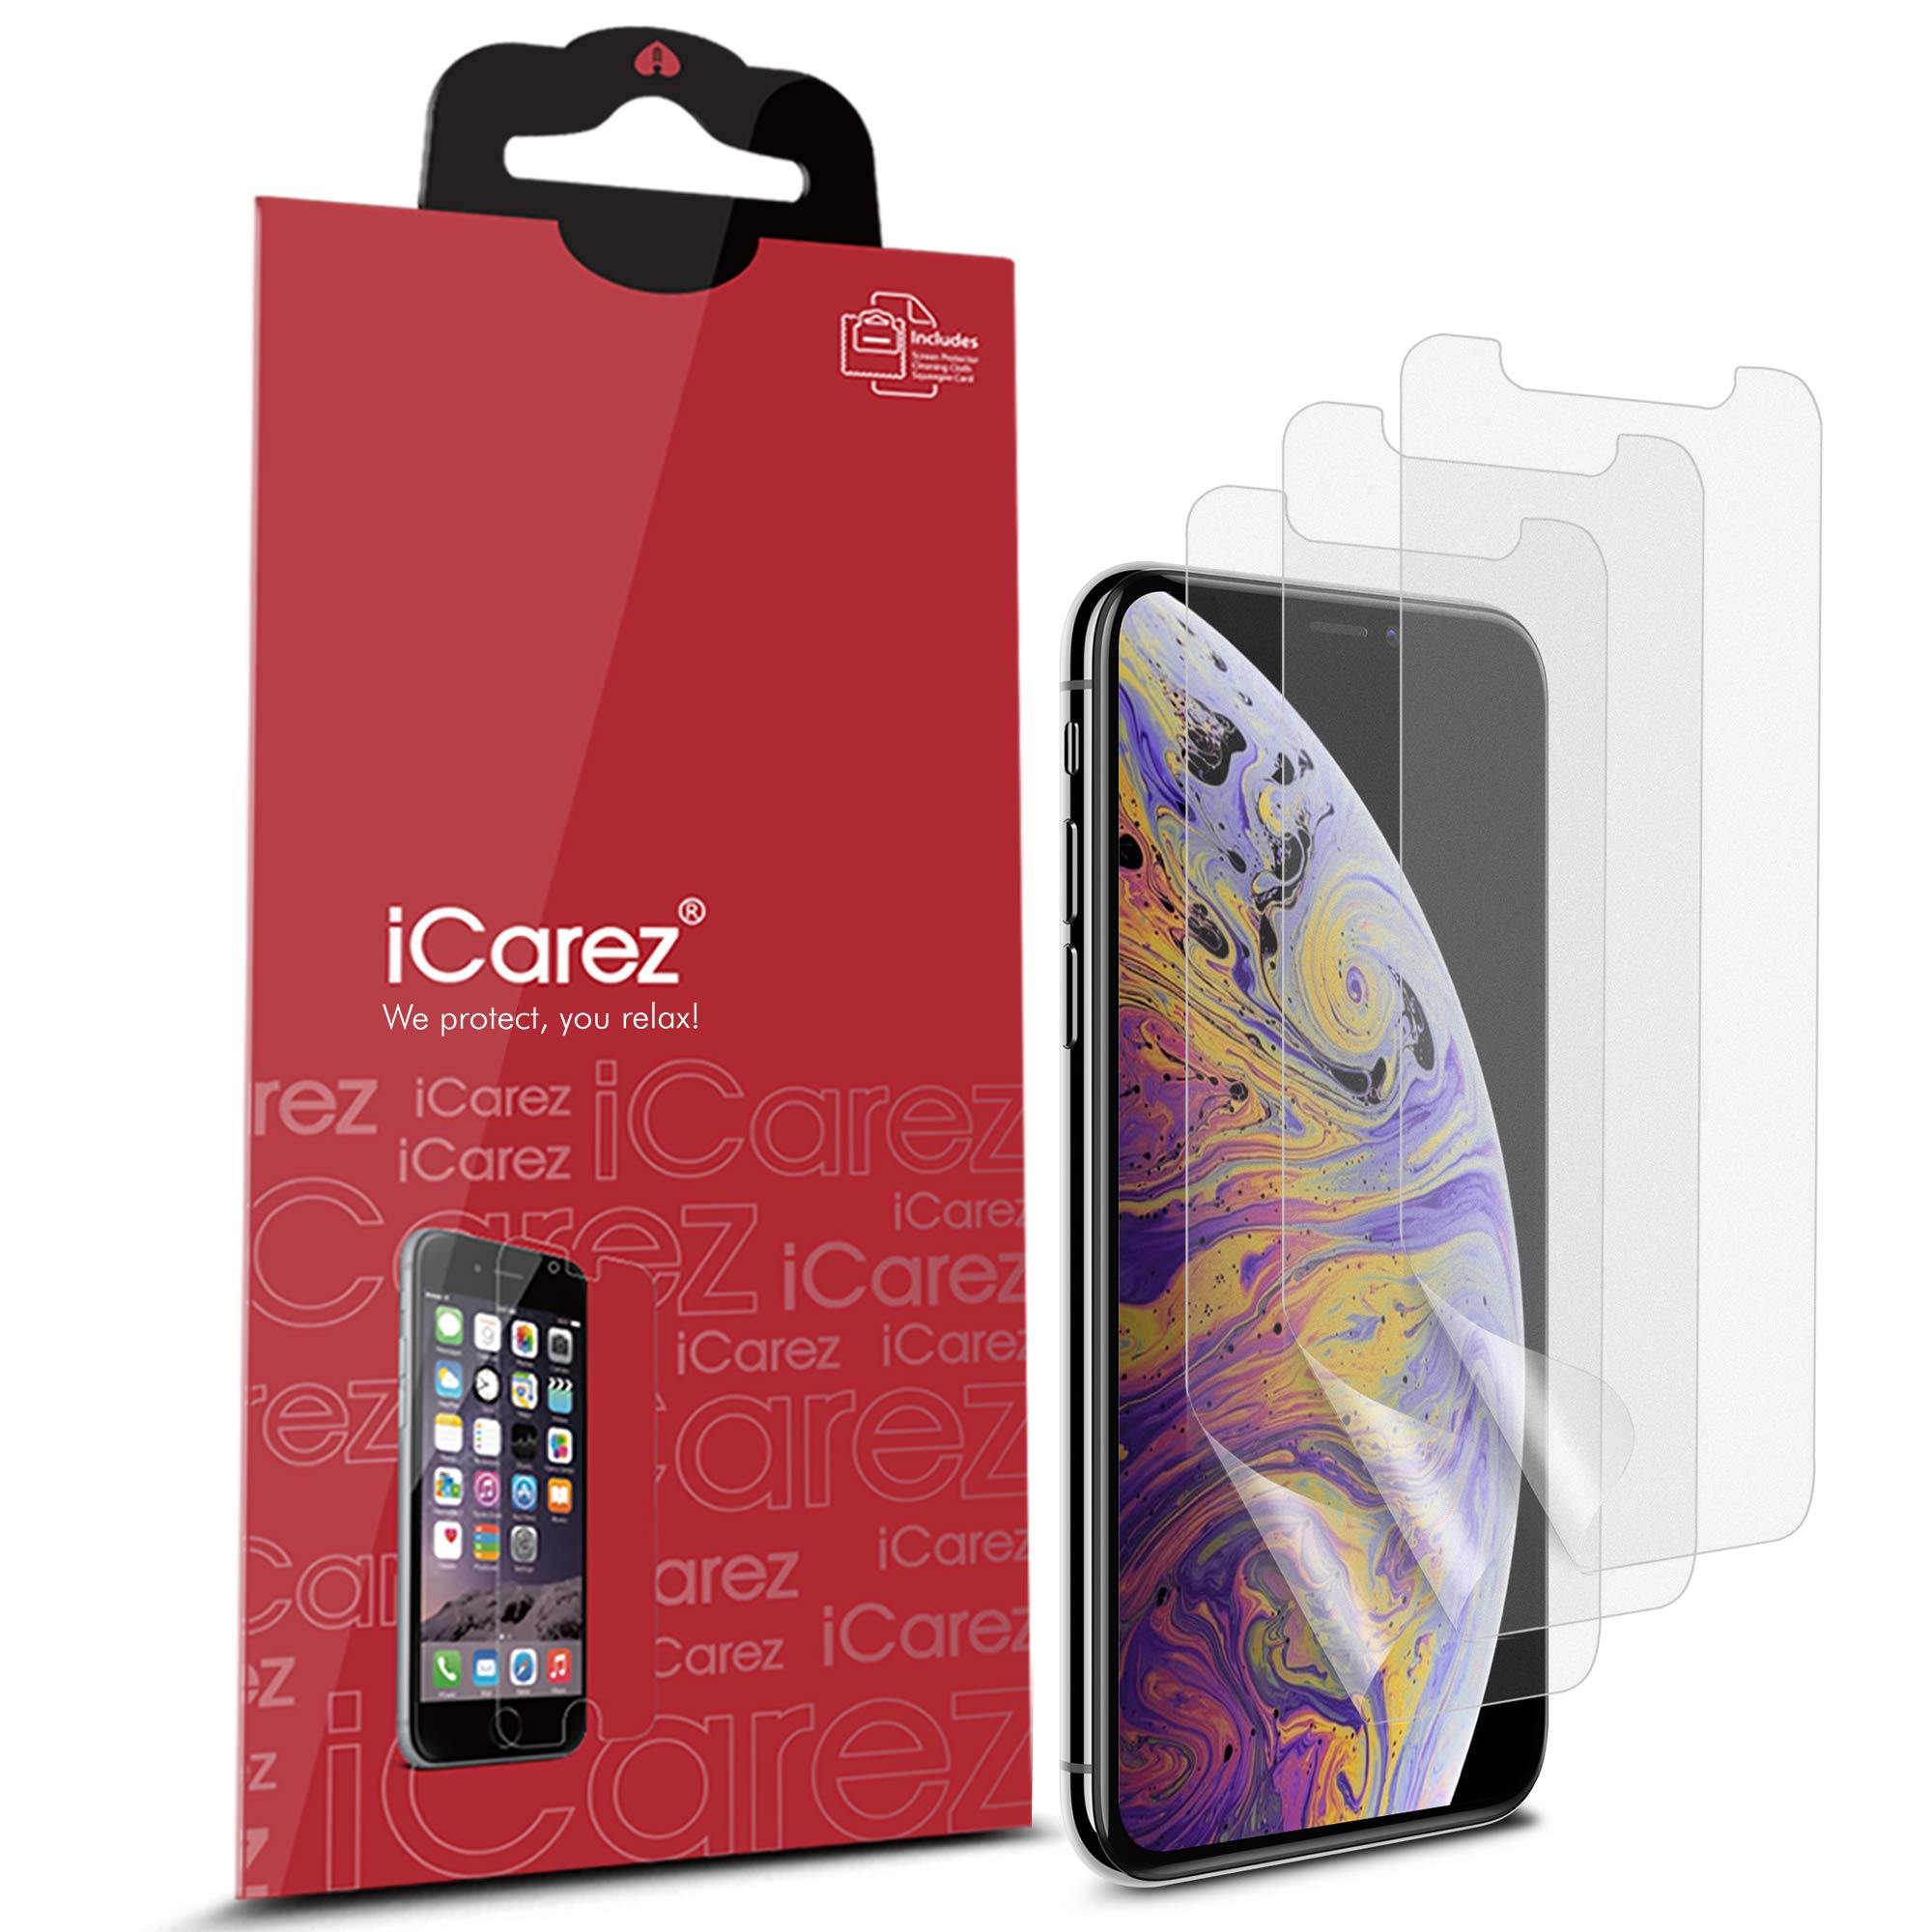 iCarez [HD Anti Glare] Matte Screen Protector for iPhone 11 Pro 2019 iPhone Xs iPhone X 5.8-Inch 2018 [3 Pack] (Case Friendly) Premium Quality No Bubble Easy to Install with Hinge Installation